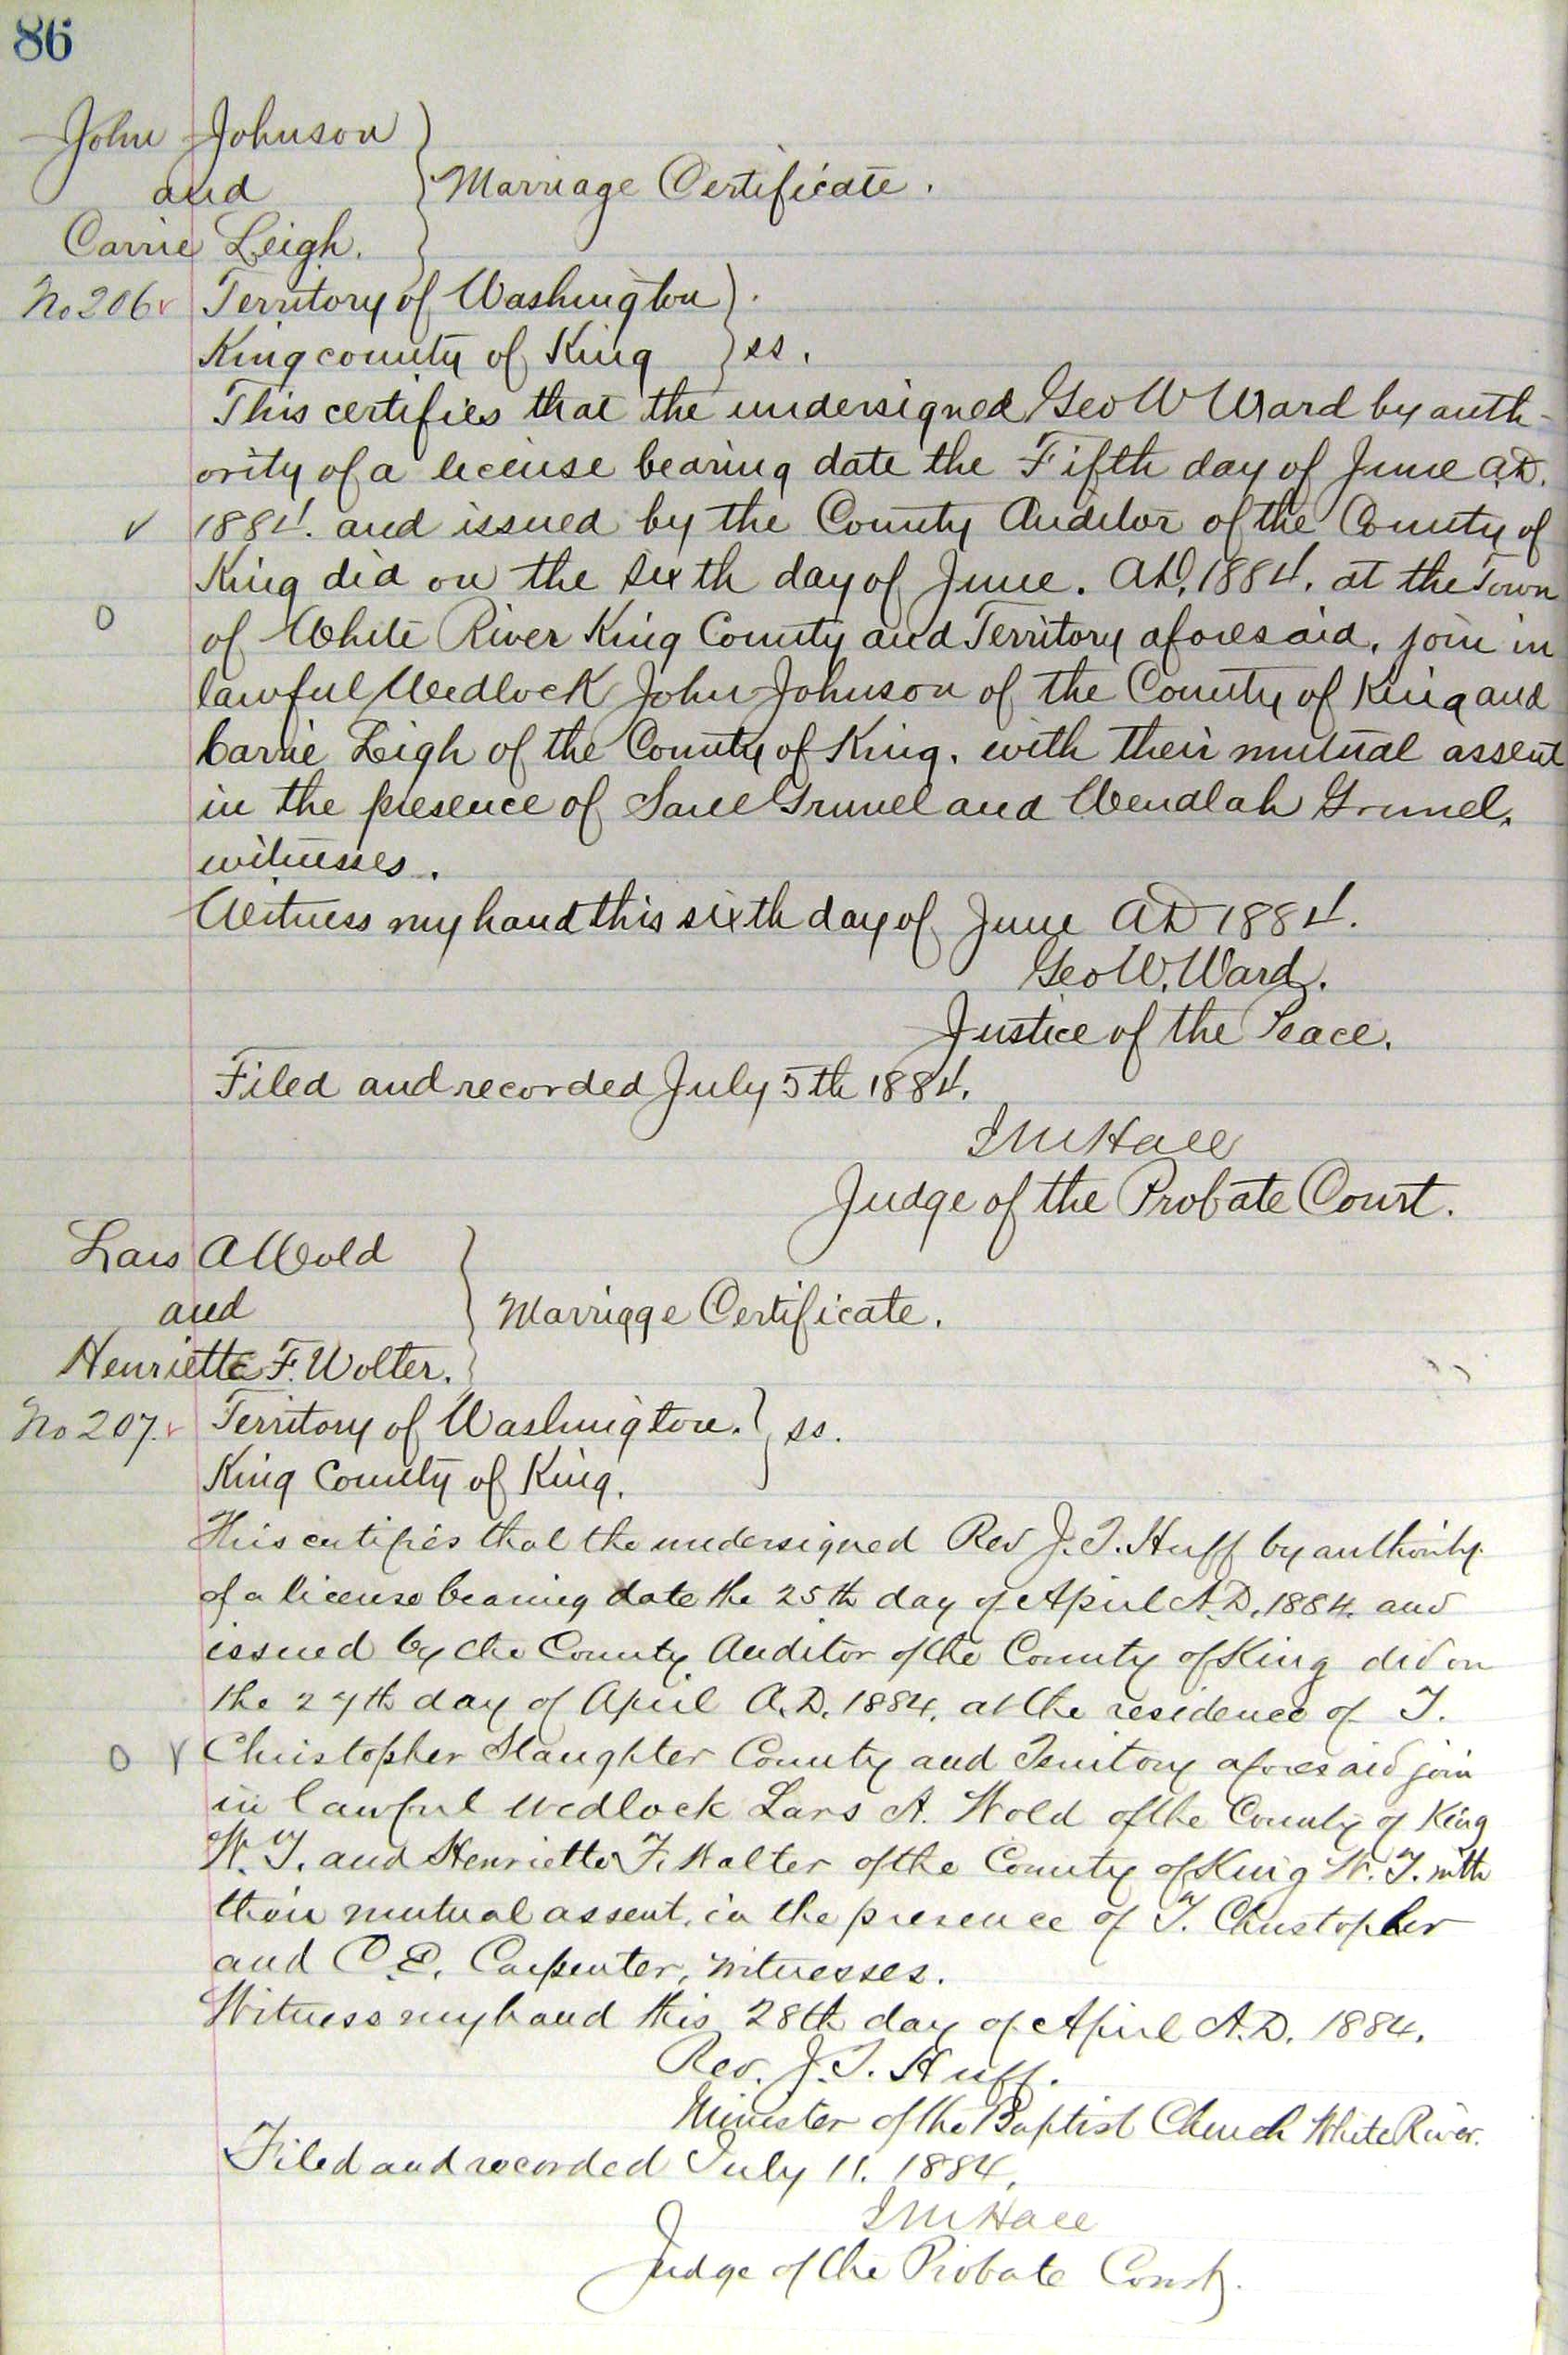 History of King County marriage certificates, 1853 to the